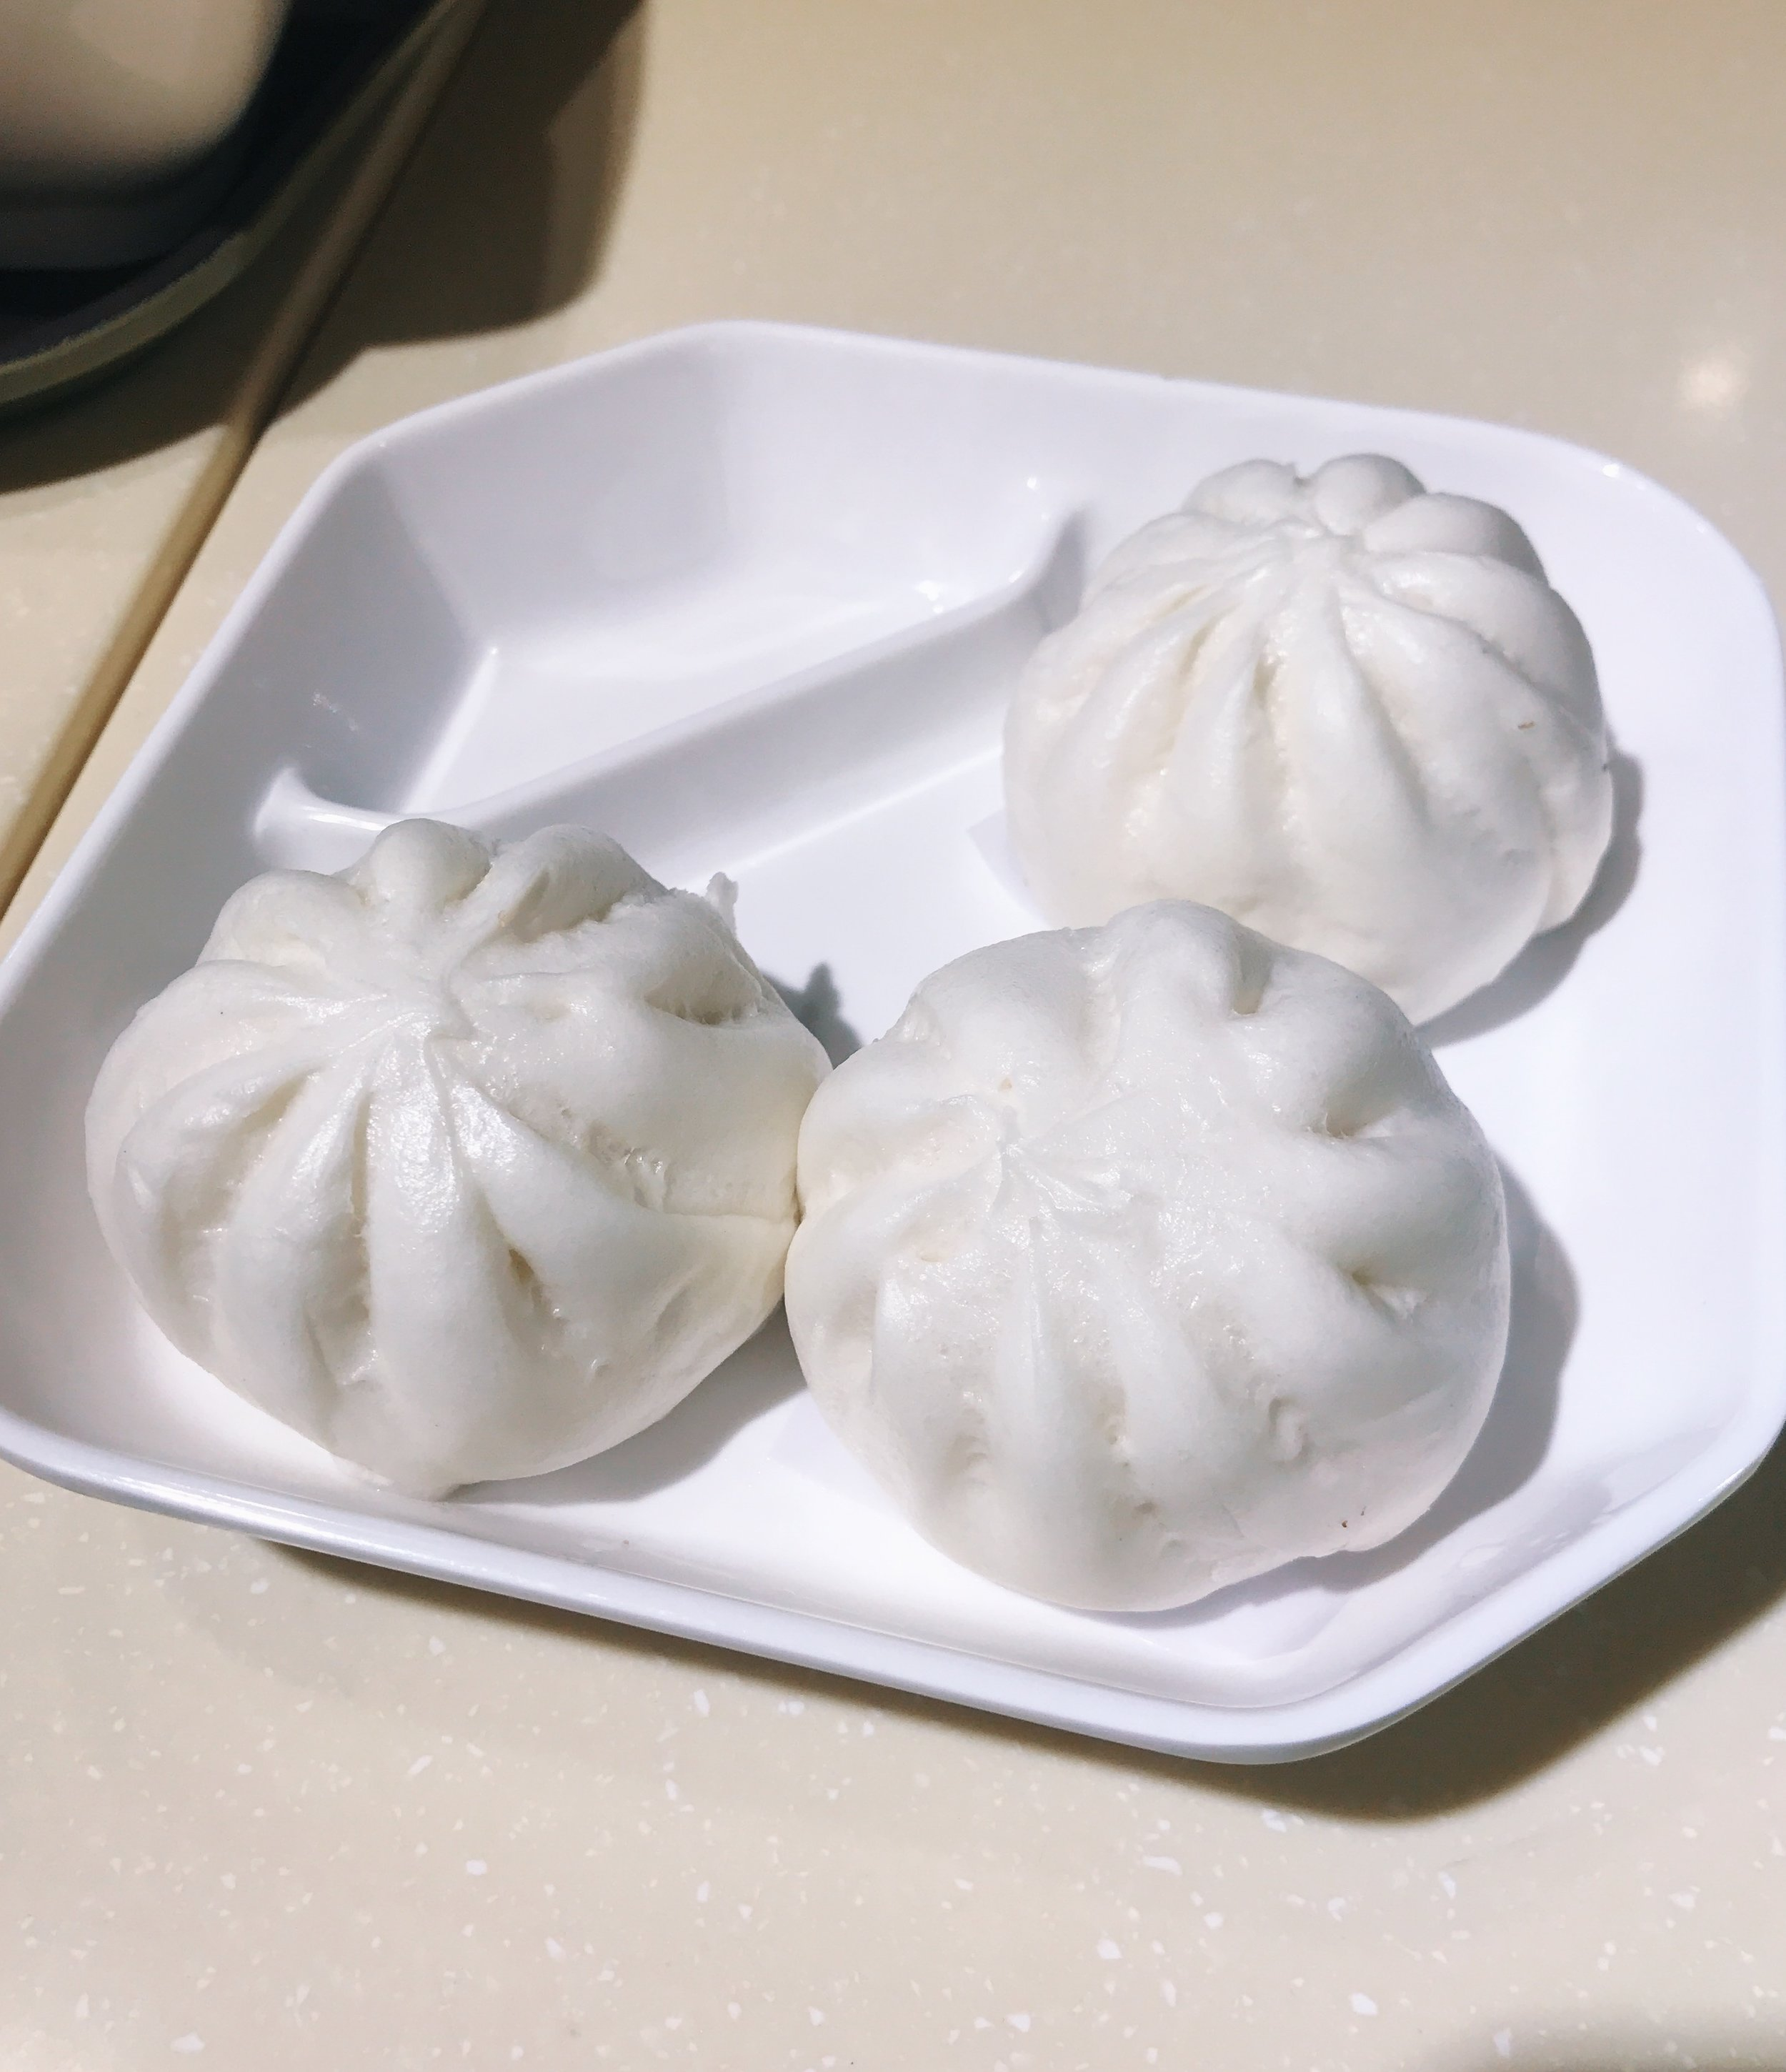 Barbecue 'pork' buns from Loving Hut